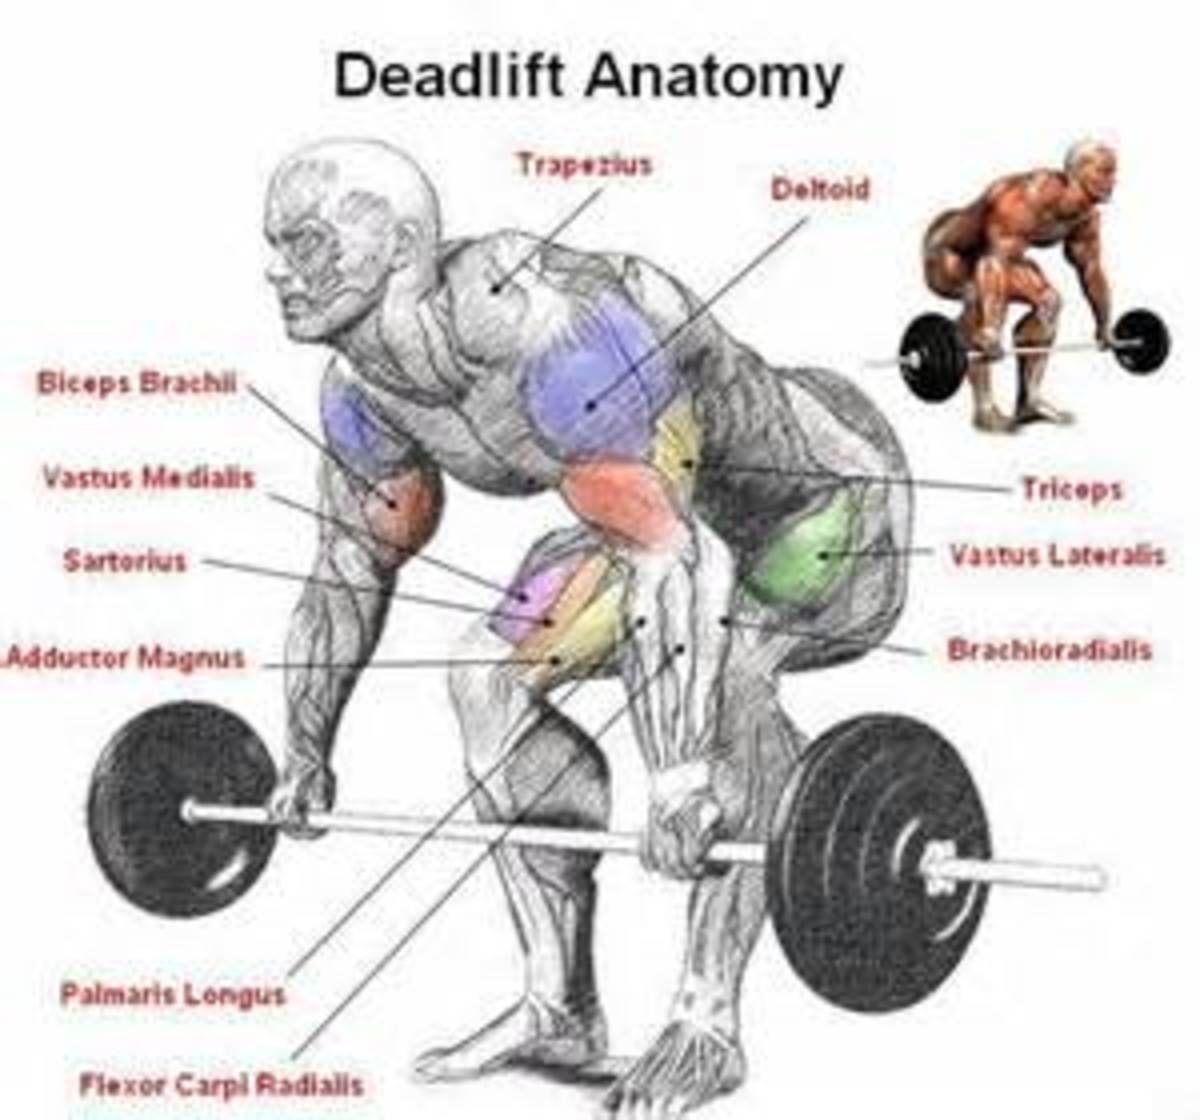 The Dead Lift: Monster of all Lifts